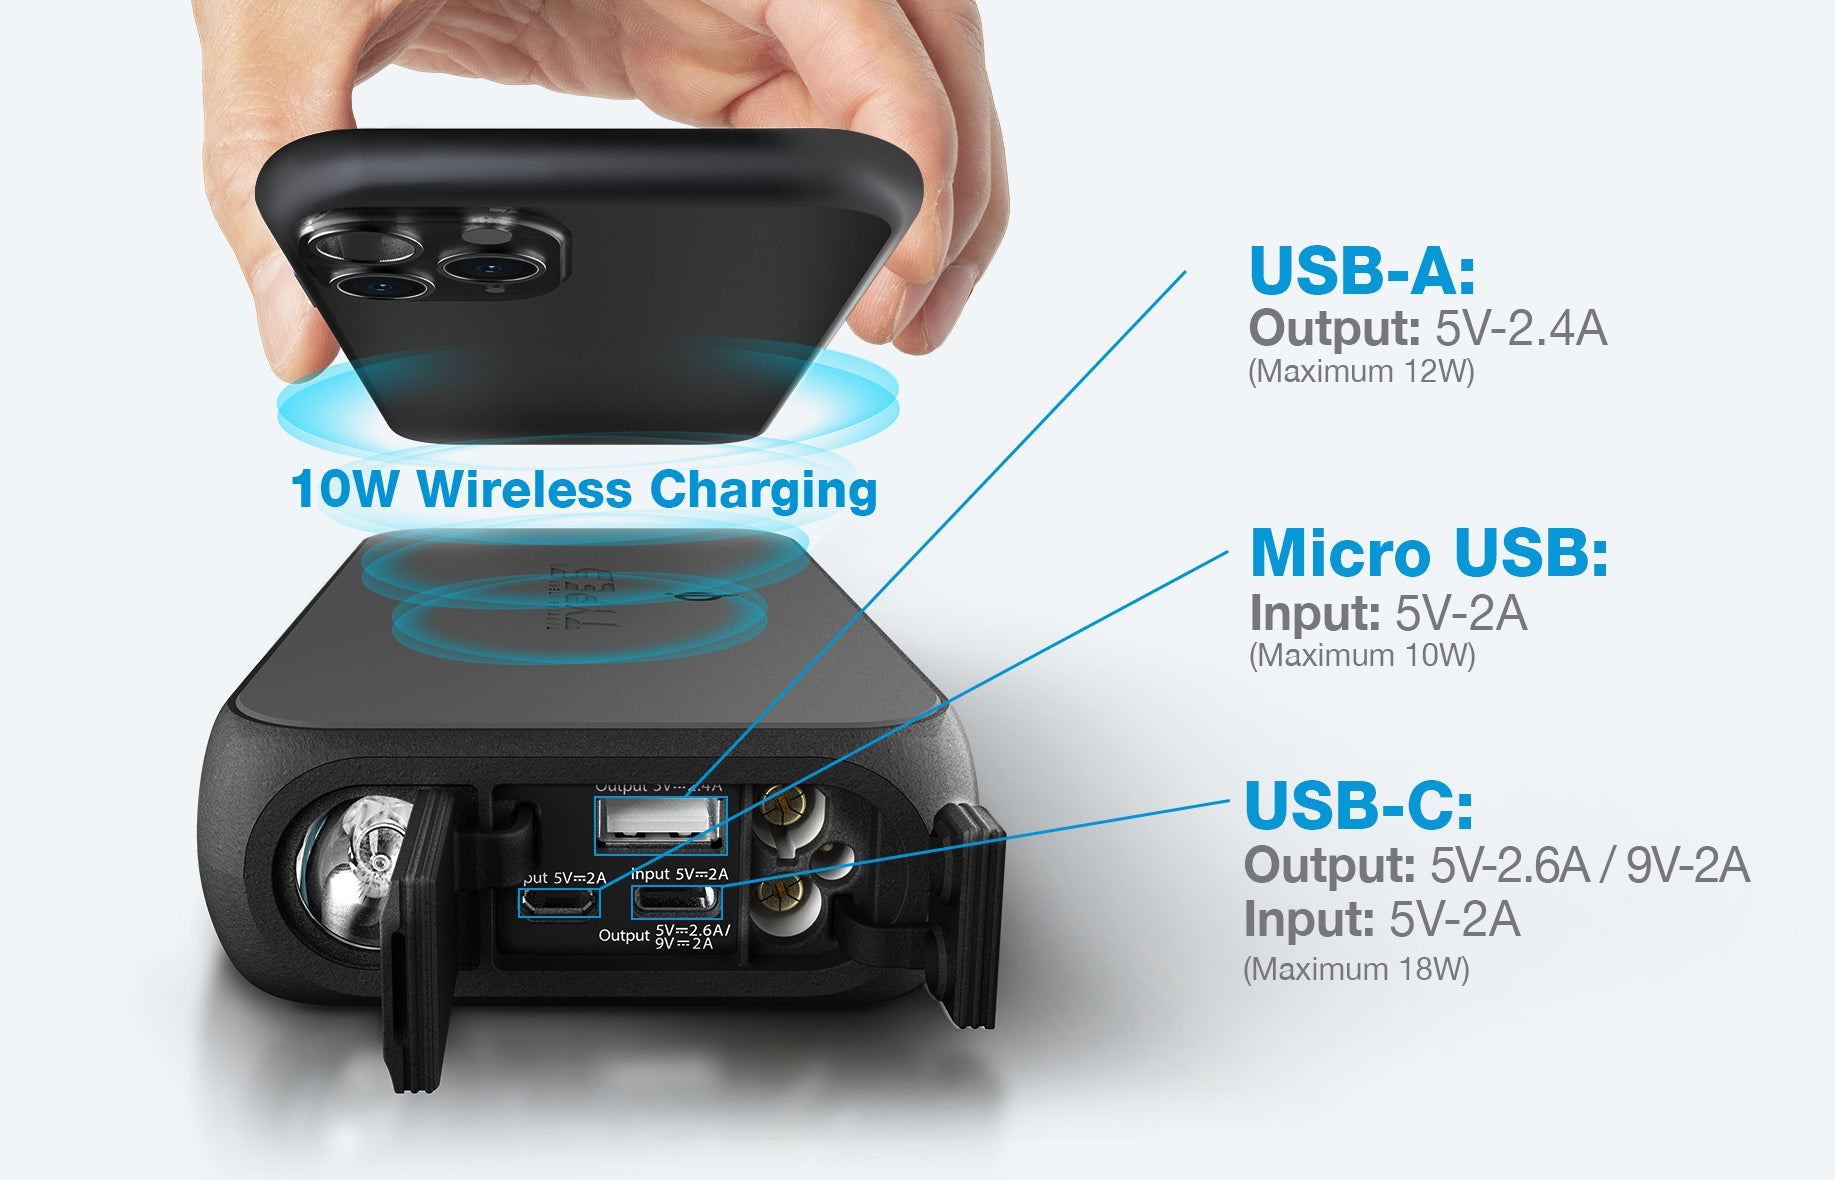 8,000mah Power Bank with Fast Qi Wireless Charging